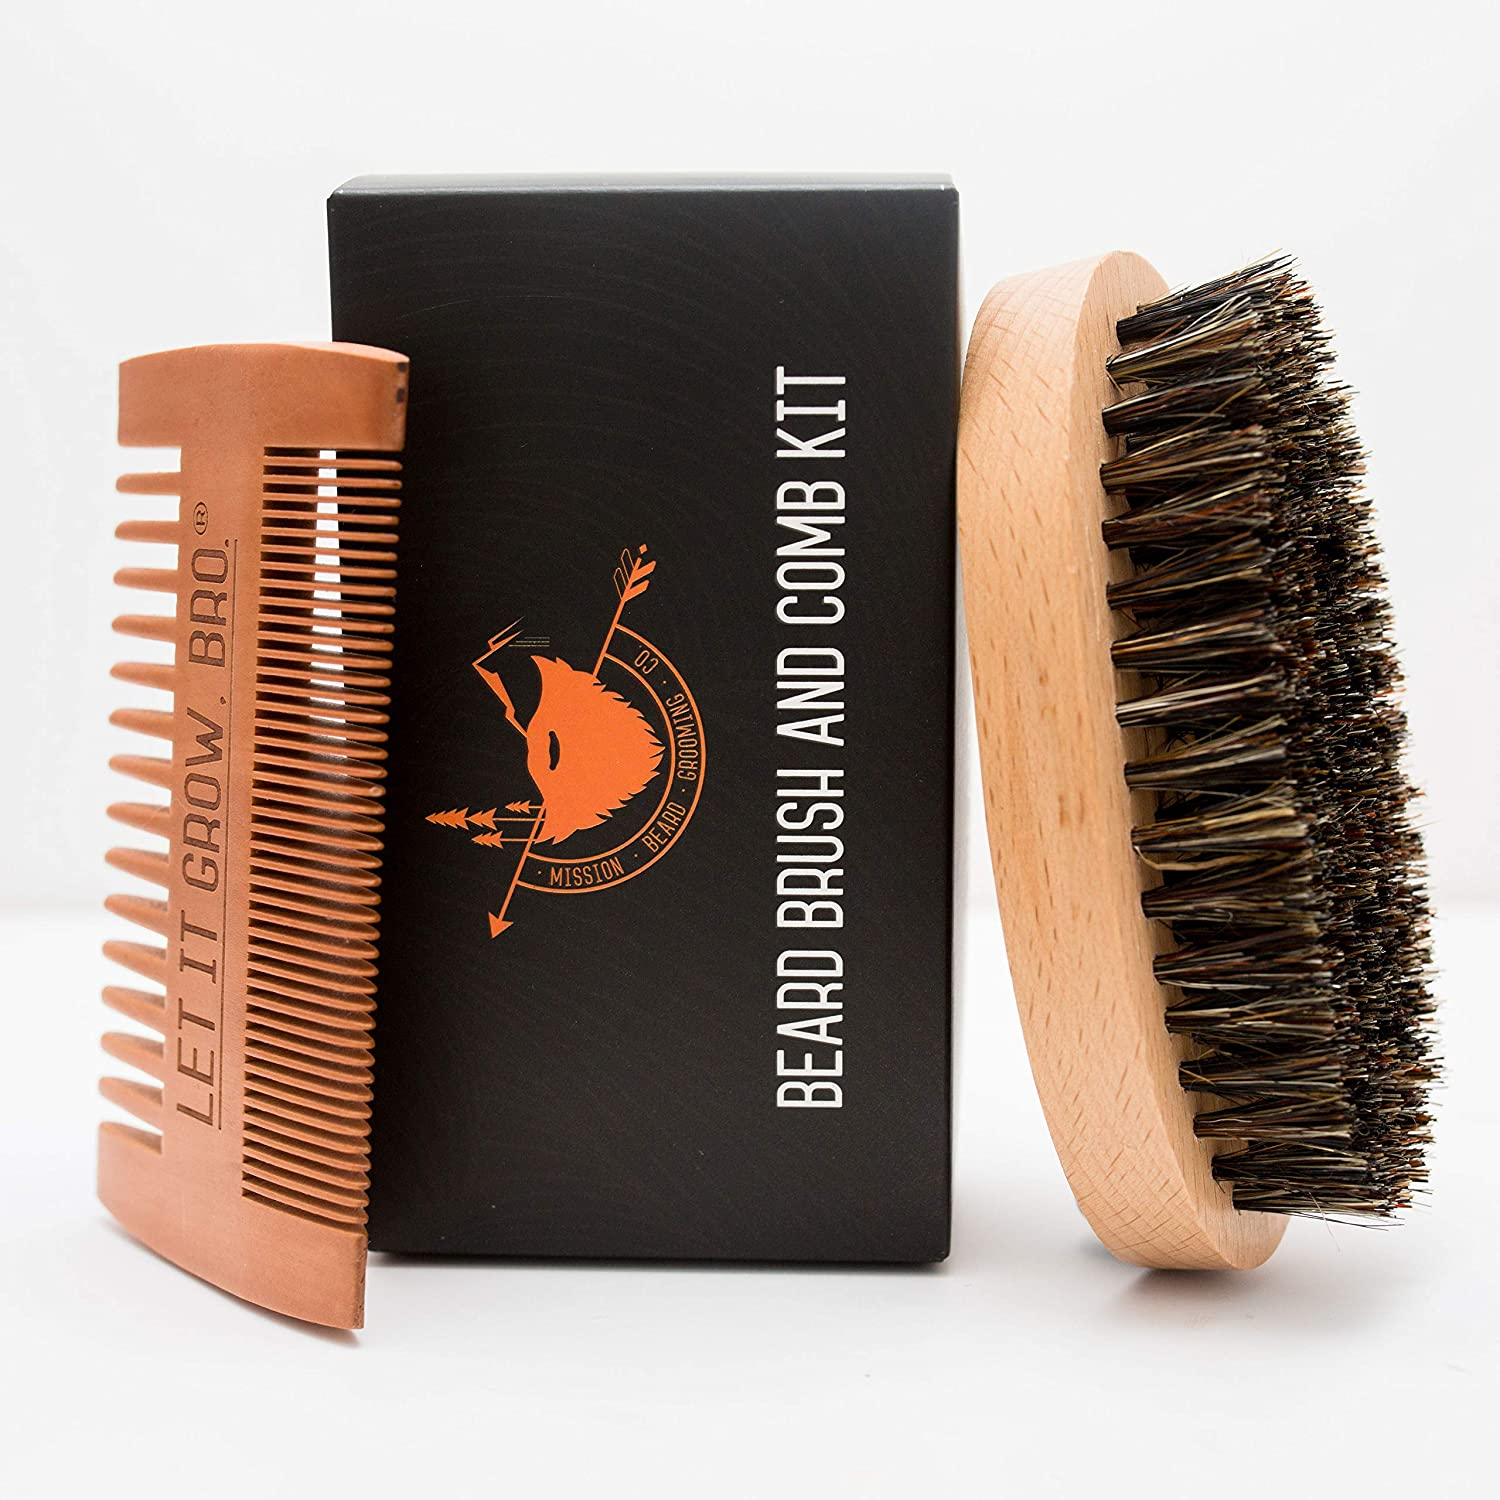 MISSION BEARD GROOMING CO. 100% Boar Bristle Beard Brush & Comb Kit - Exfoliates Skin, Tames The Wildest Beards & Promotes Beard Growth